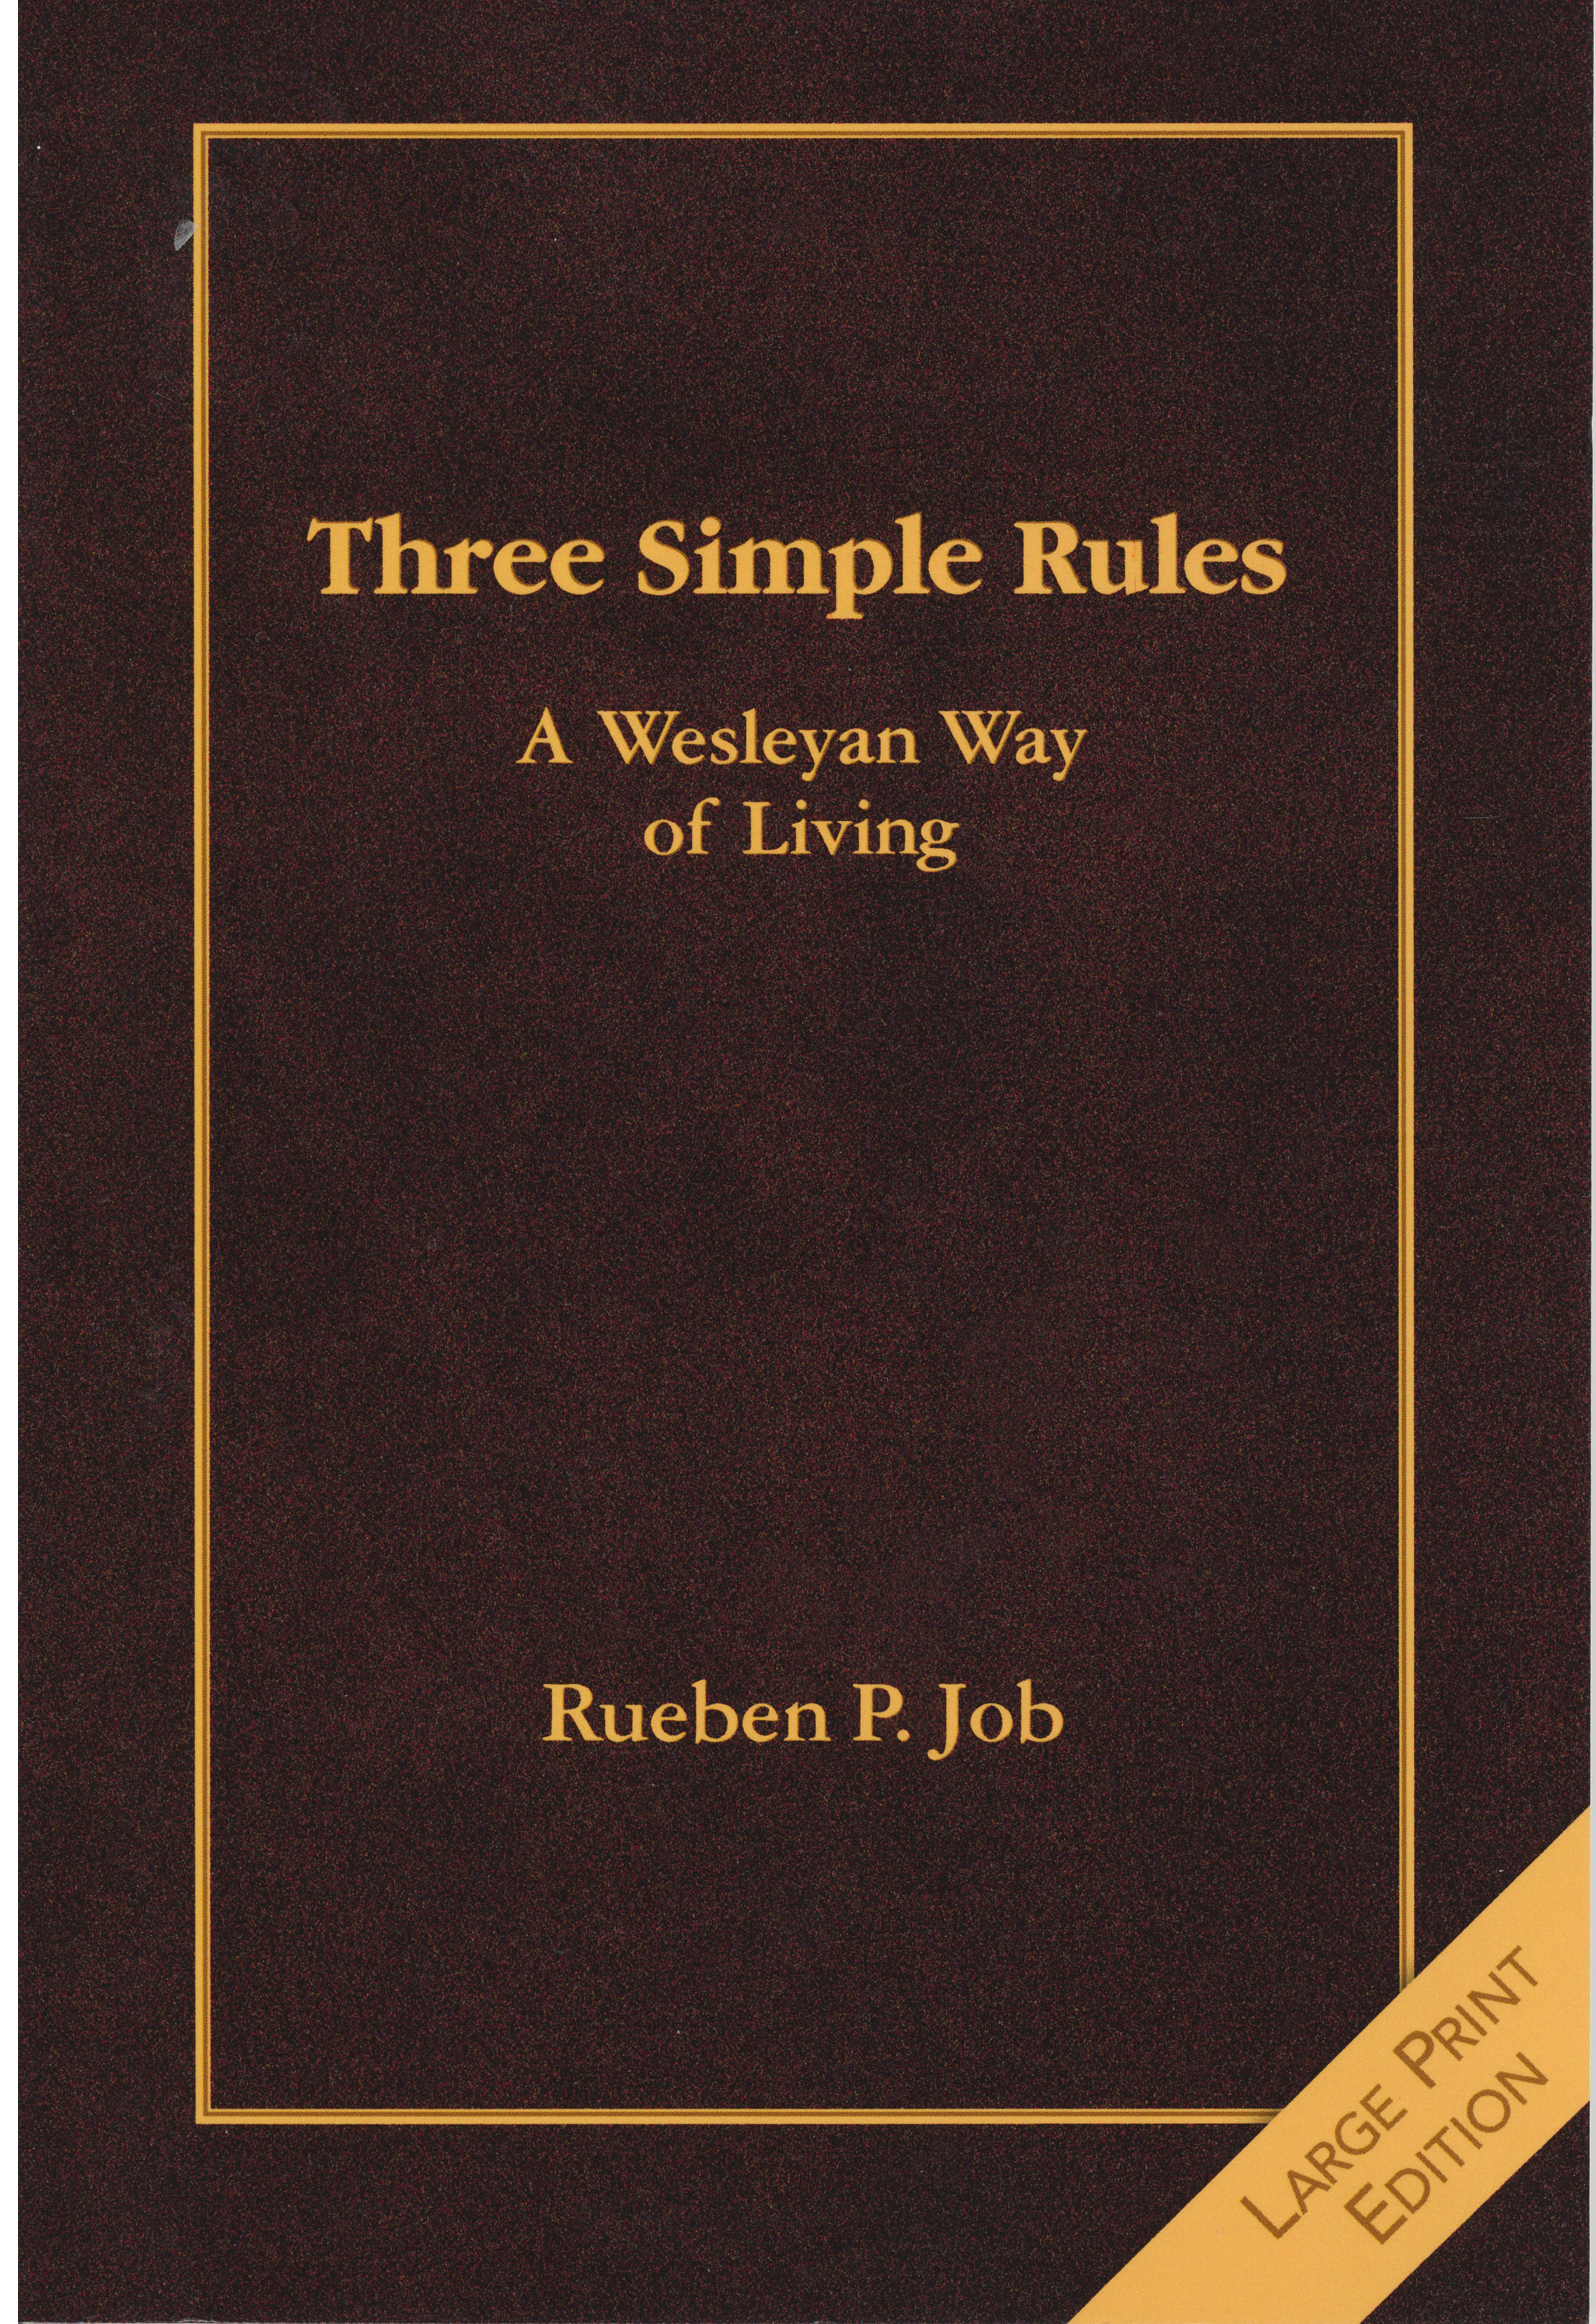 Three Simple Rules by Rueben P. Job 108-9781426702235